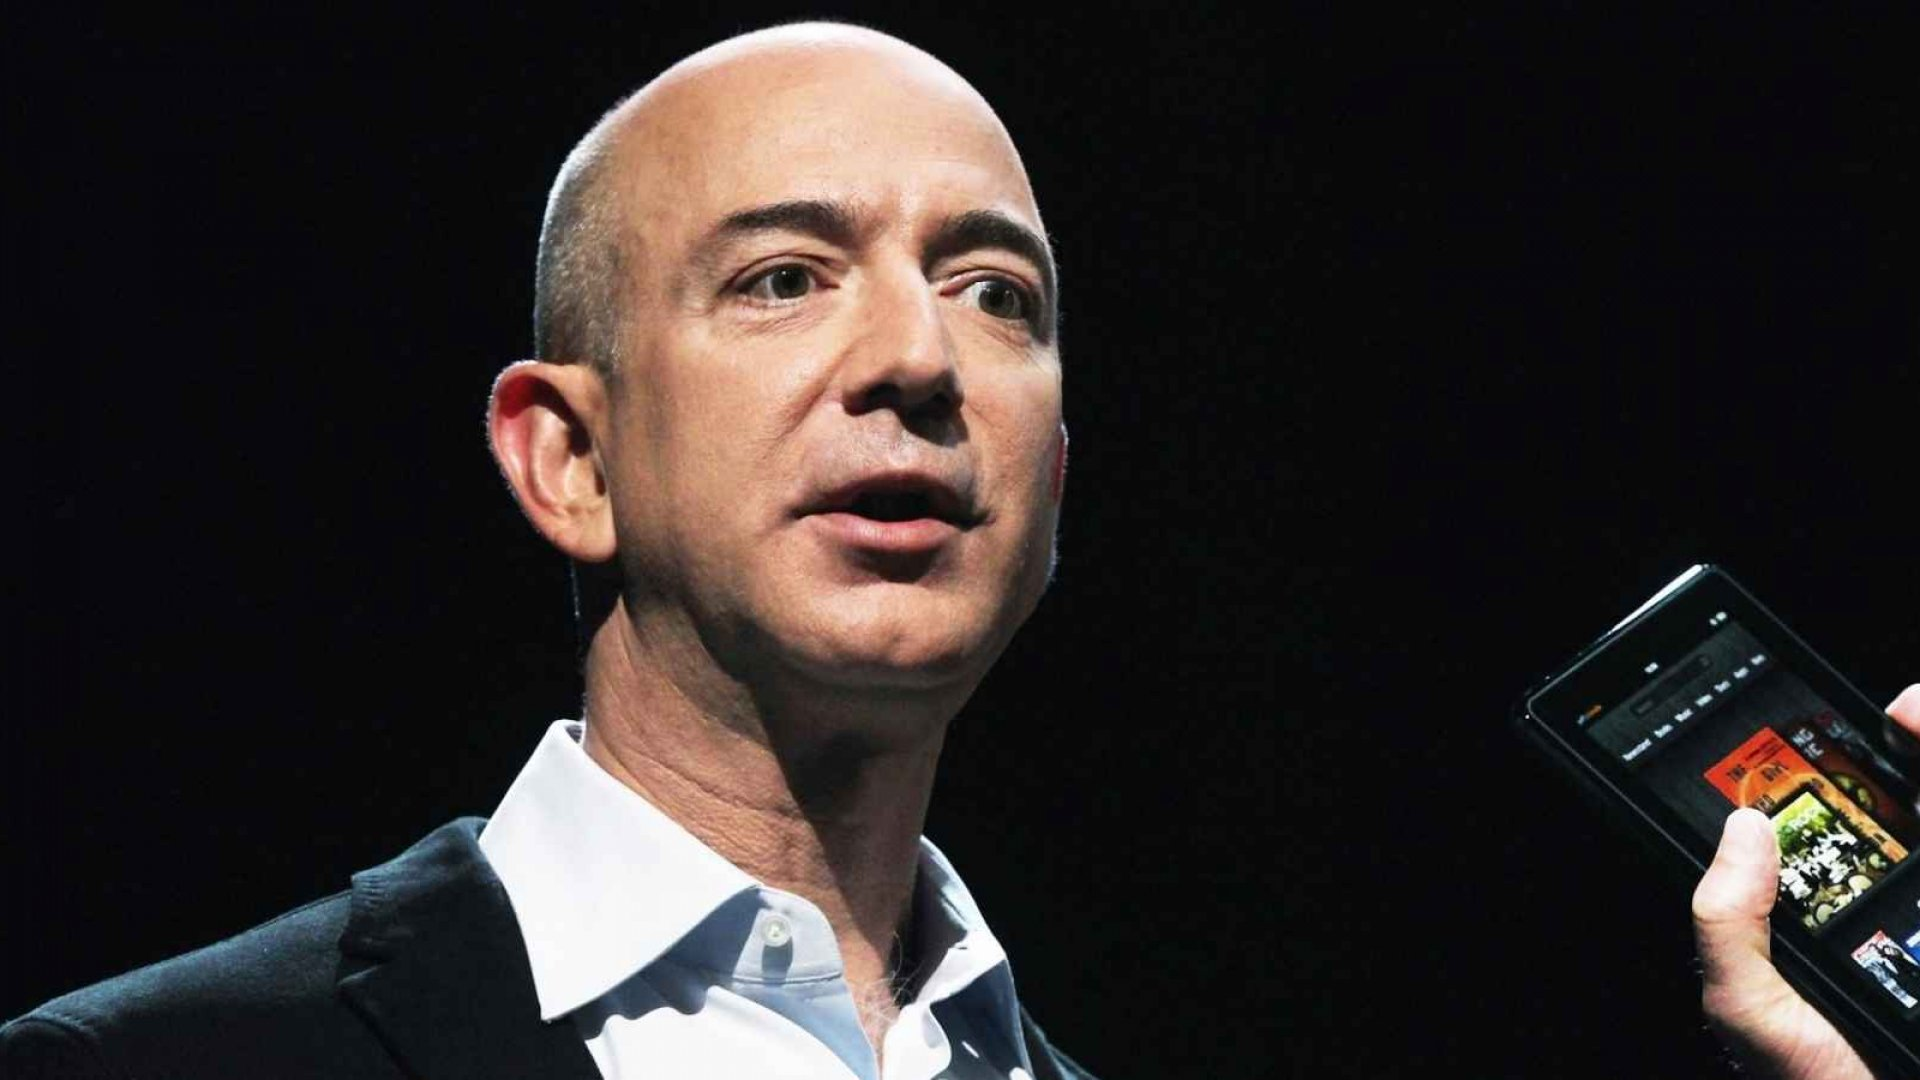 Jeff Bezos's Odd-But-Effective Meeting Strategy